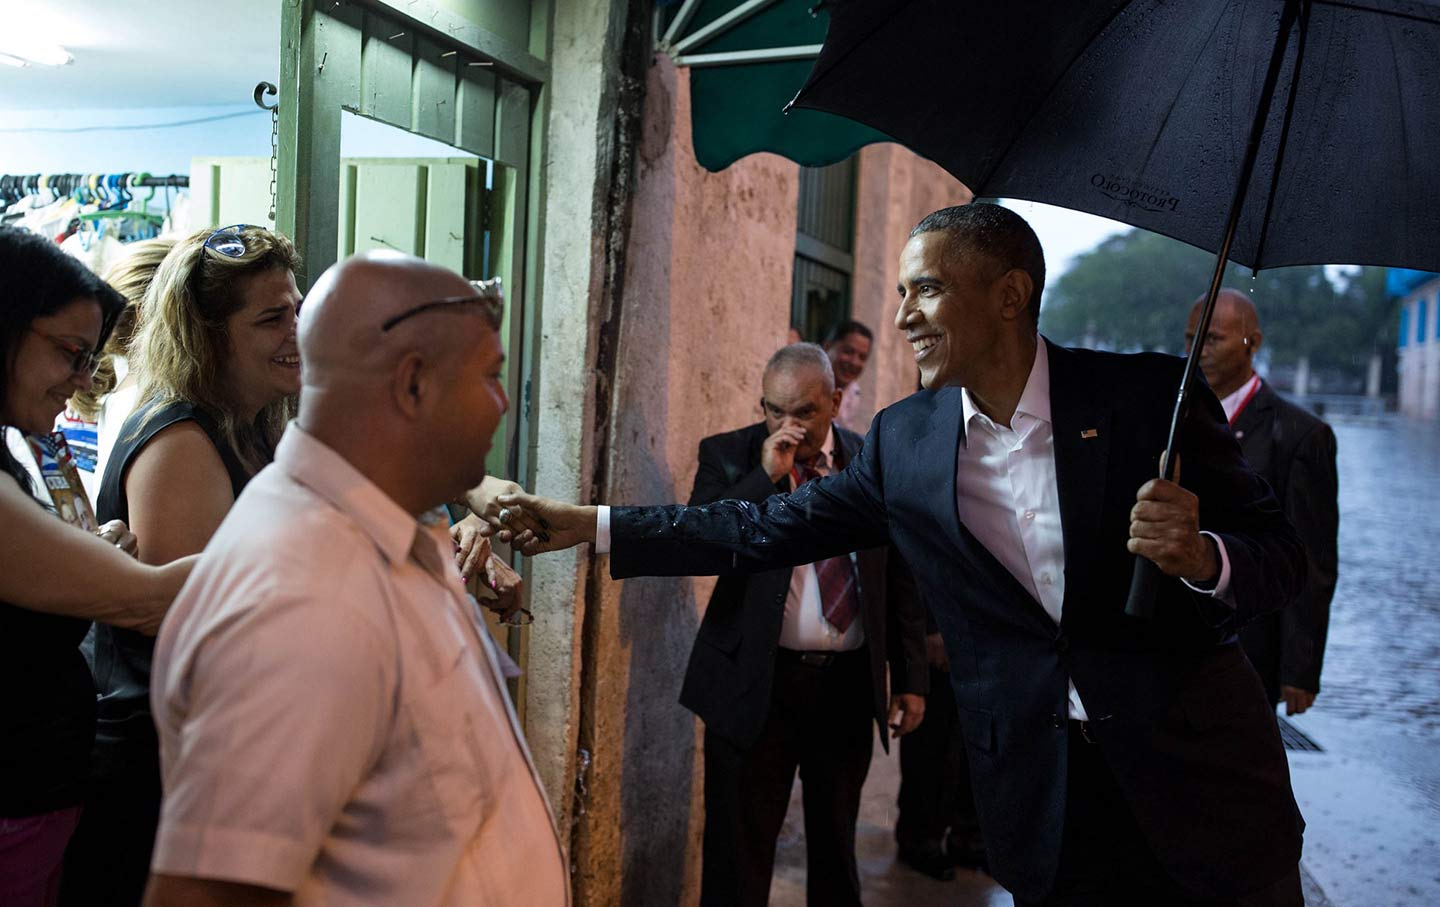 Trump is threatening to roll back normalization with cubaheres president barack obama greets people in old havana cuba in march 2016 official white house photo by pete souza m4hsunfo